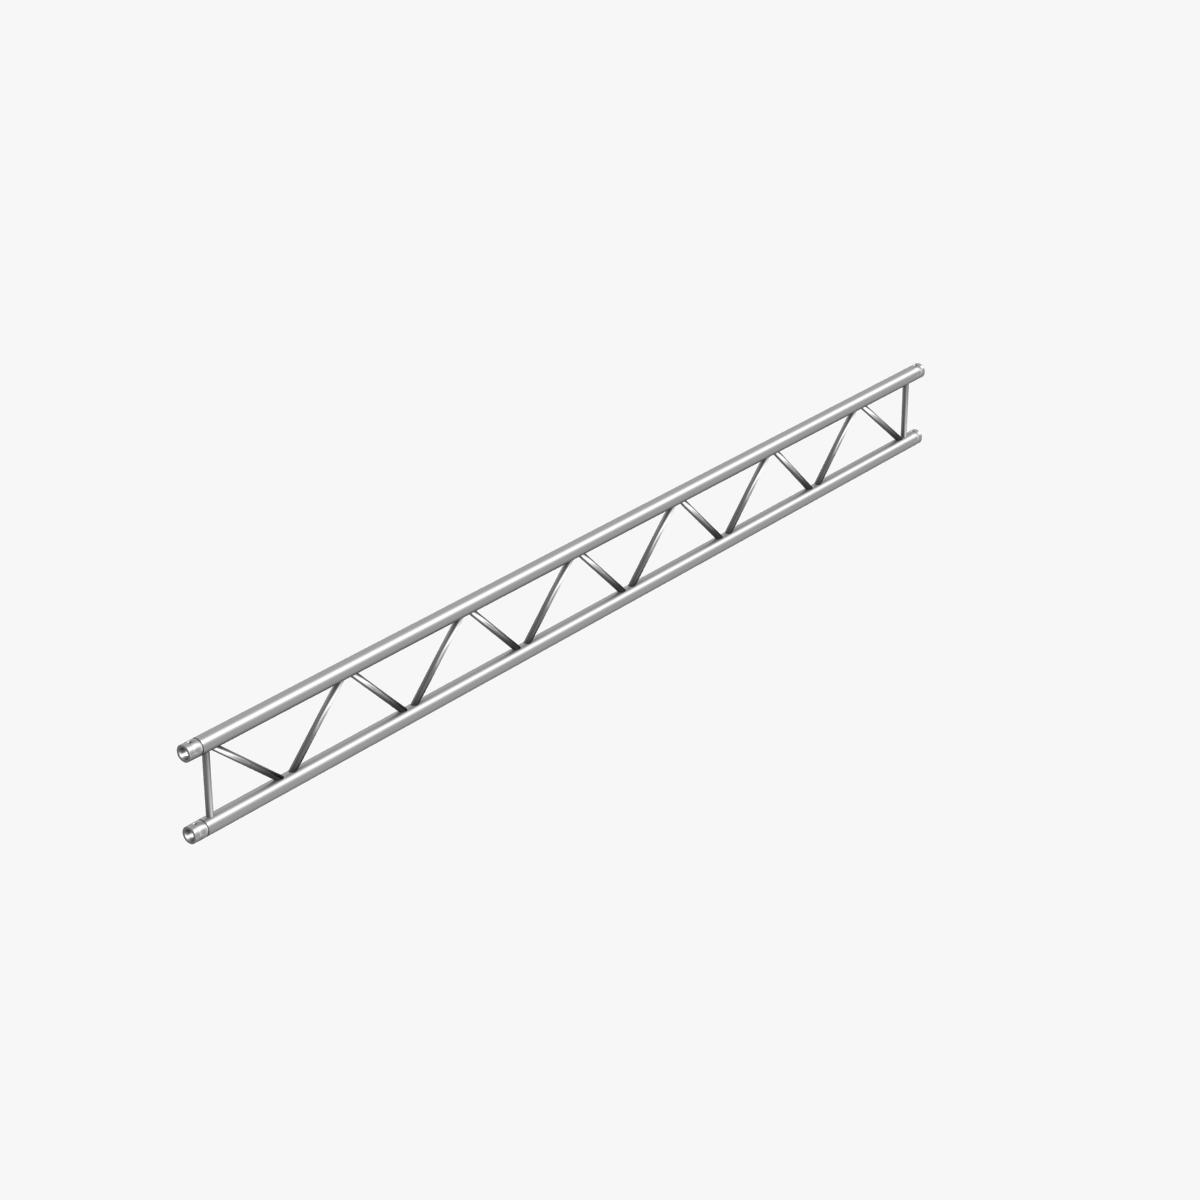 beam trusses (collection 24 modular pieces) 3d model 3ds max dxf fbx bmp blend c4d dae other obj 268729